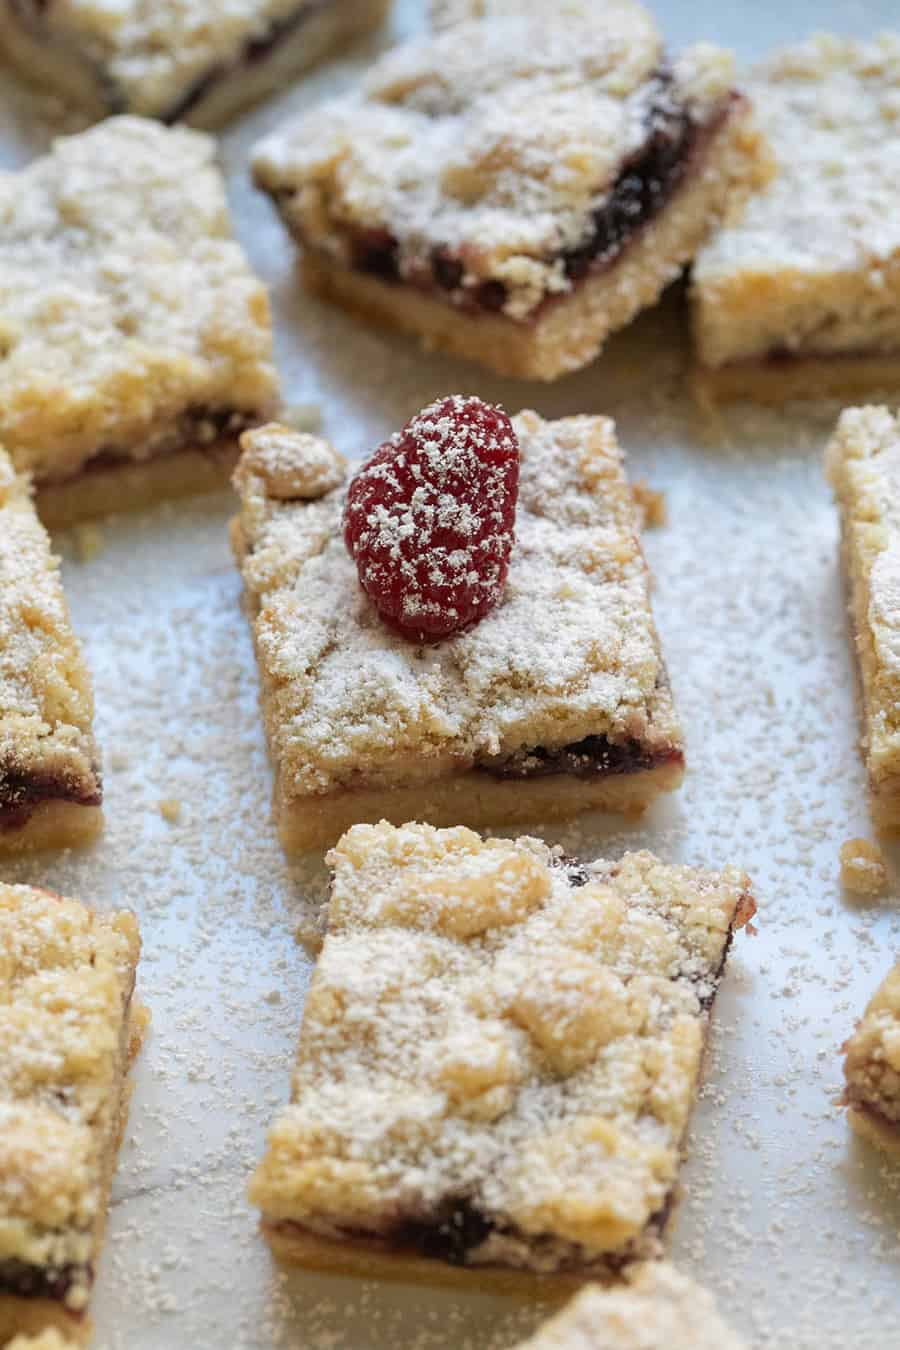 Crumble bars with powdered sugar and filled with raspberry.